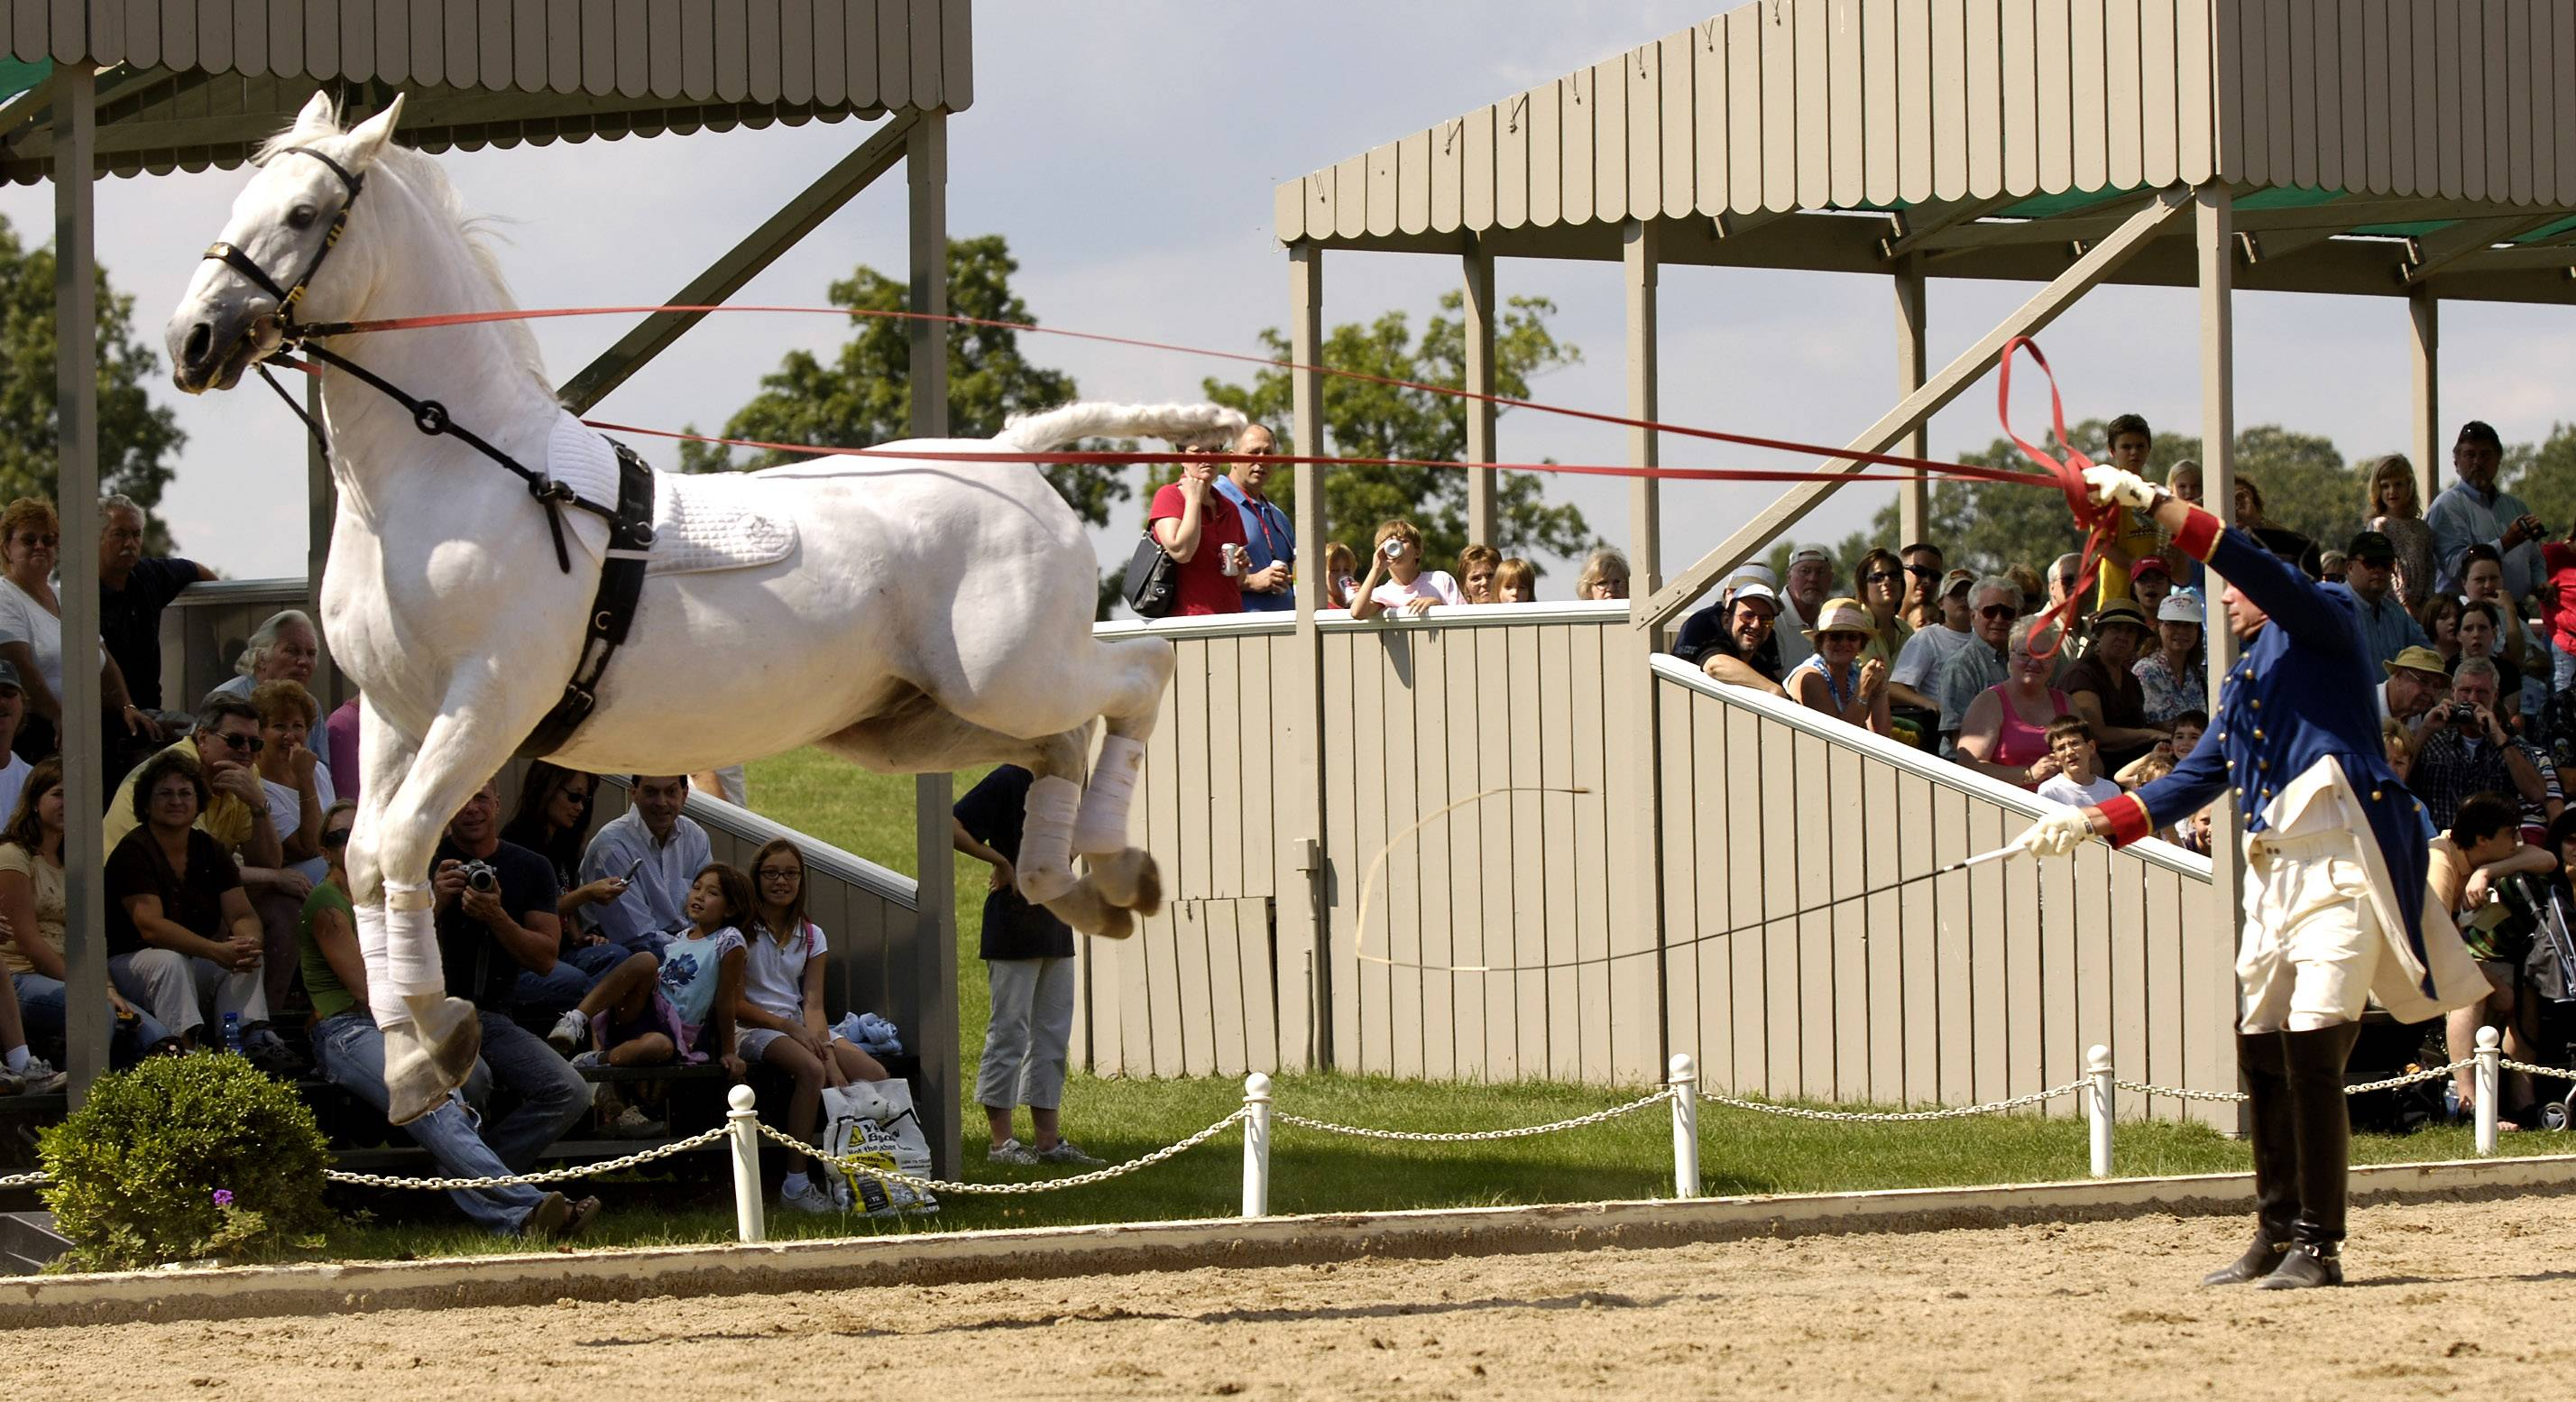 The Tempel Lipizzan horses will demonstrate dramatic leaps and lifts as Tempel Farms opens its summer performance season on Saturday, June 21.